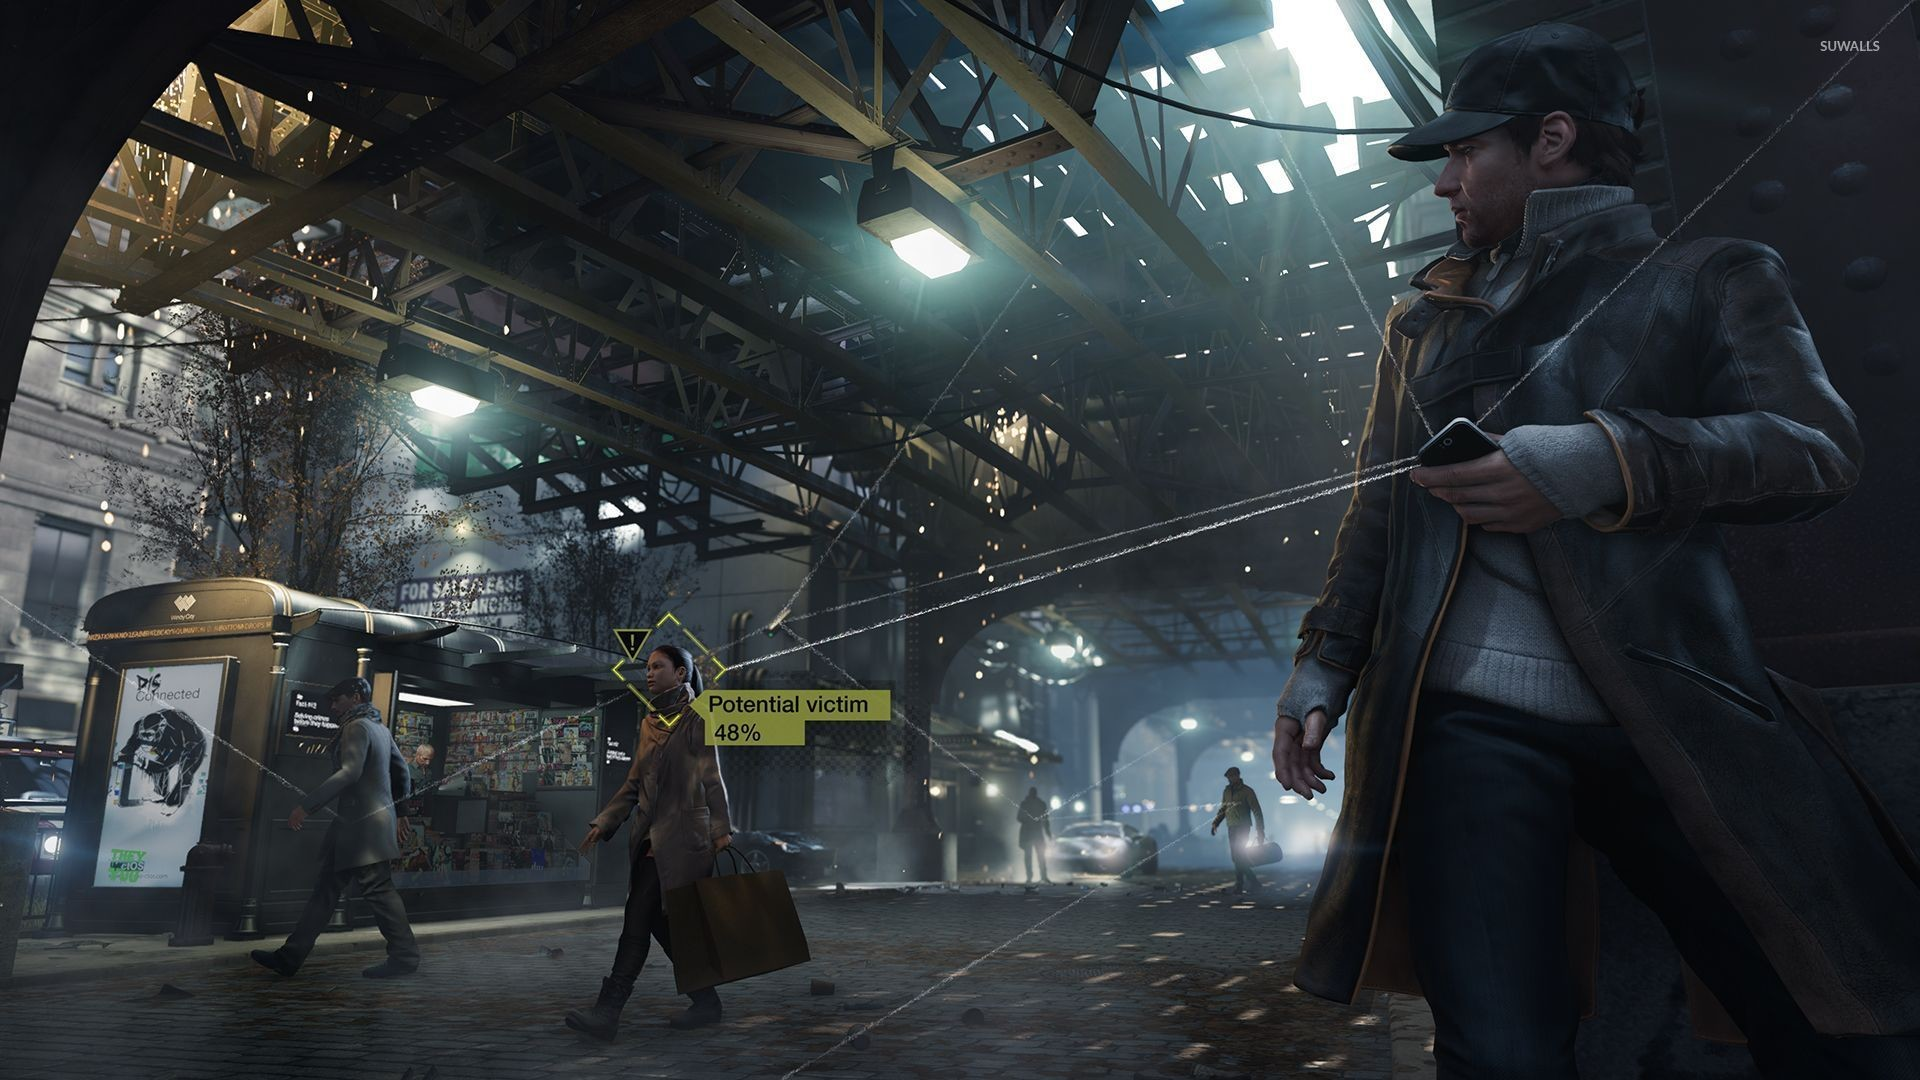 1920x1080 Aiden Pearce in Watch Dogs wallpapers Wallpapers) – HD Wallpapers